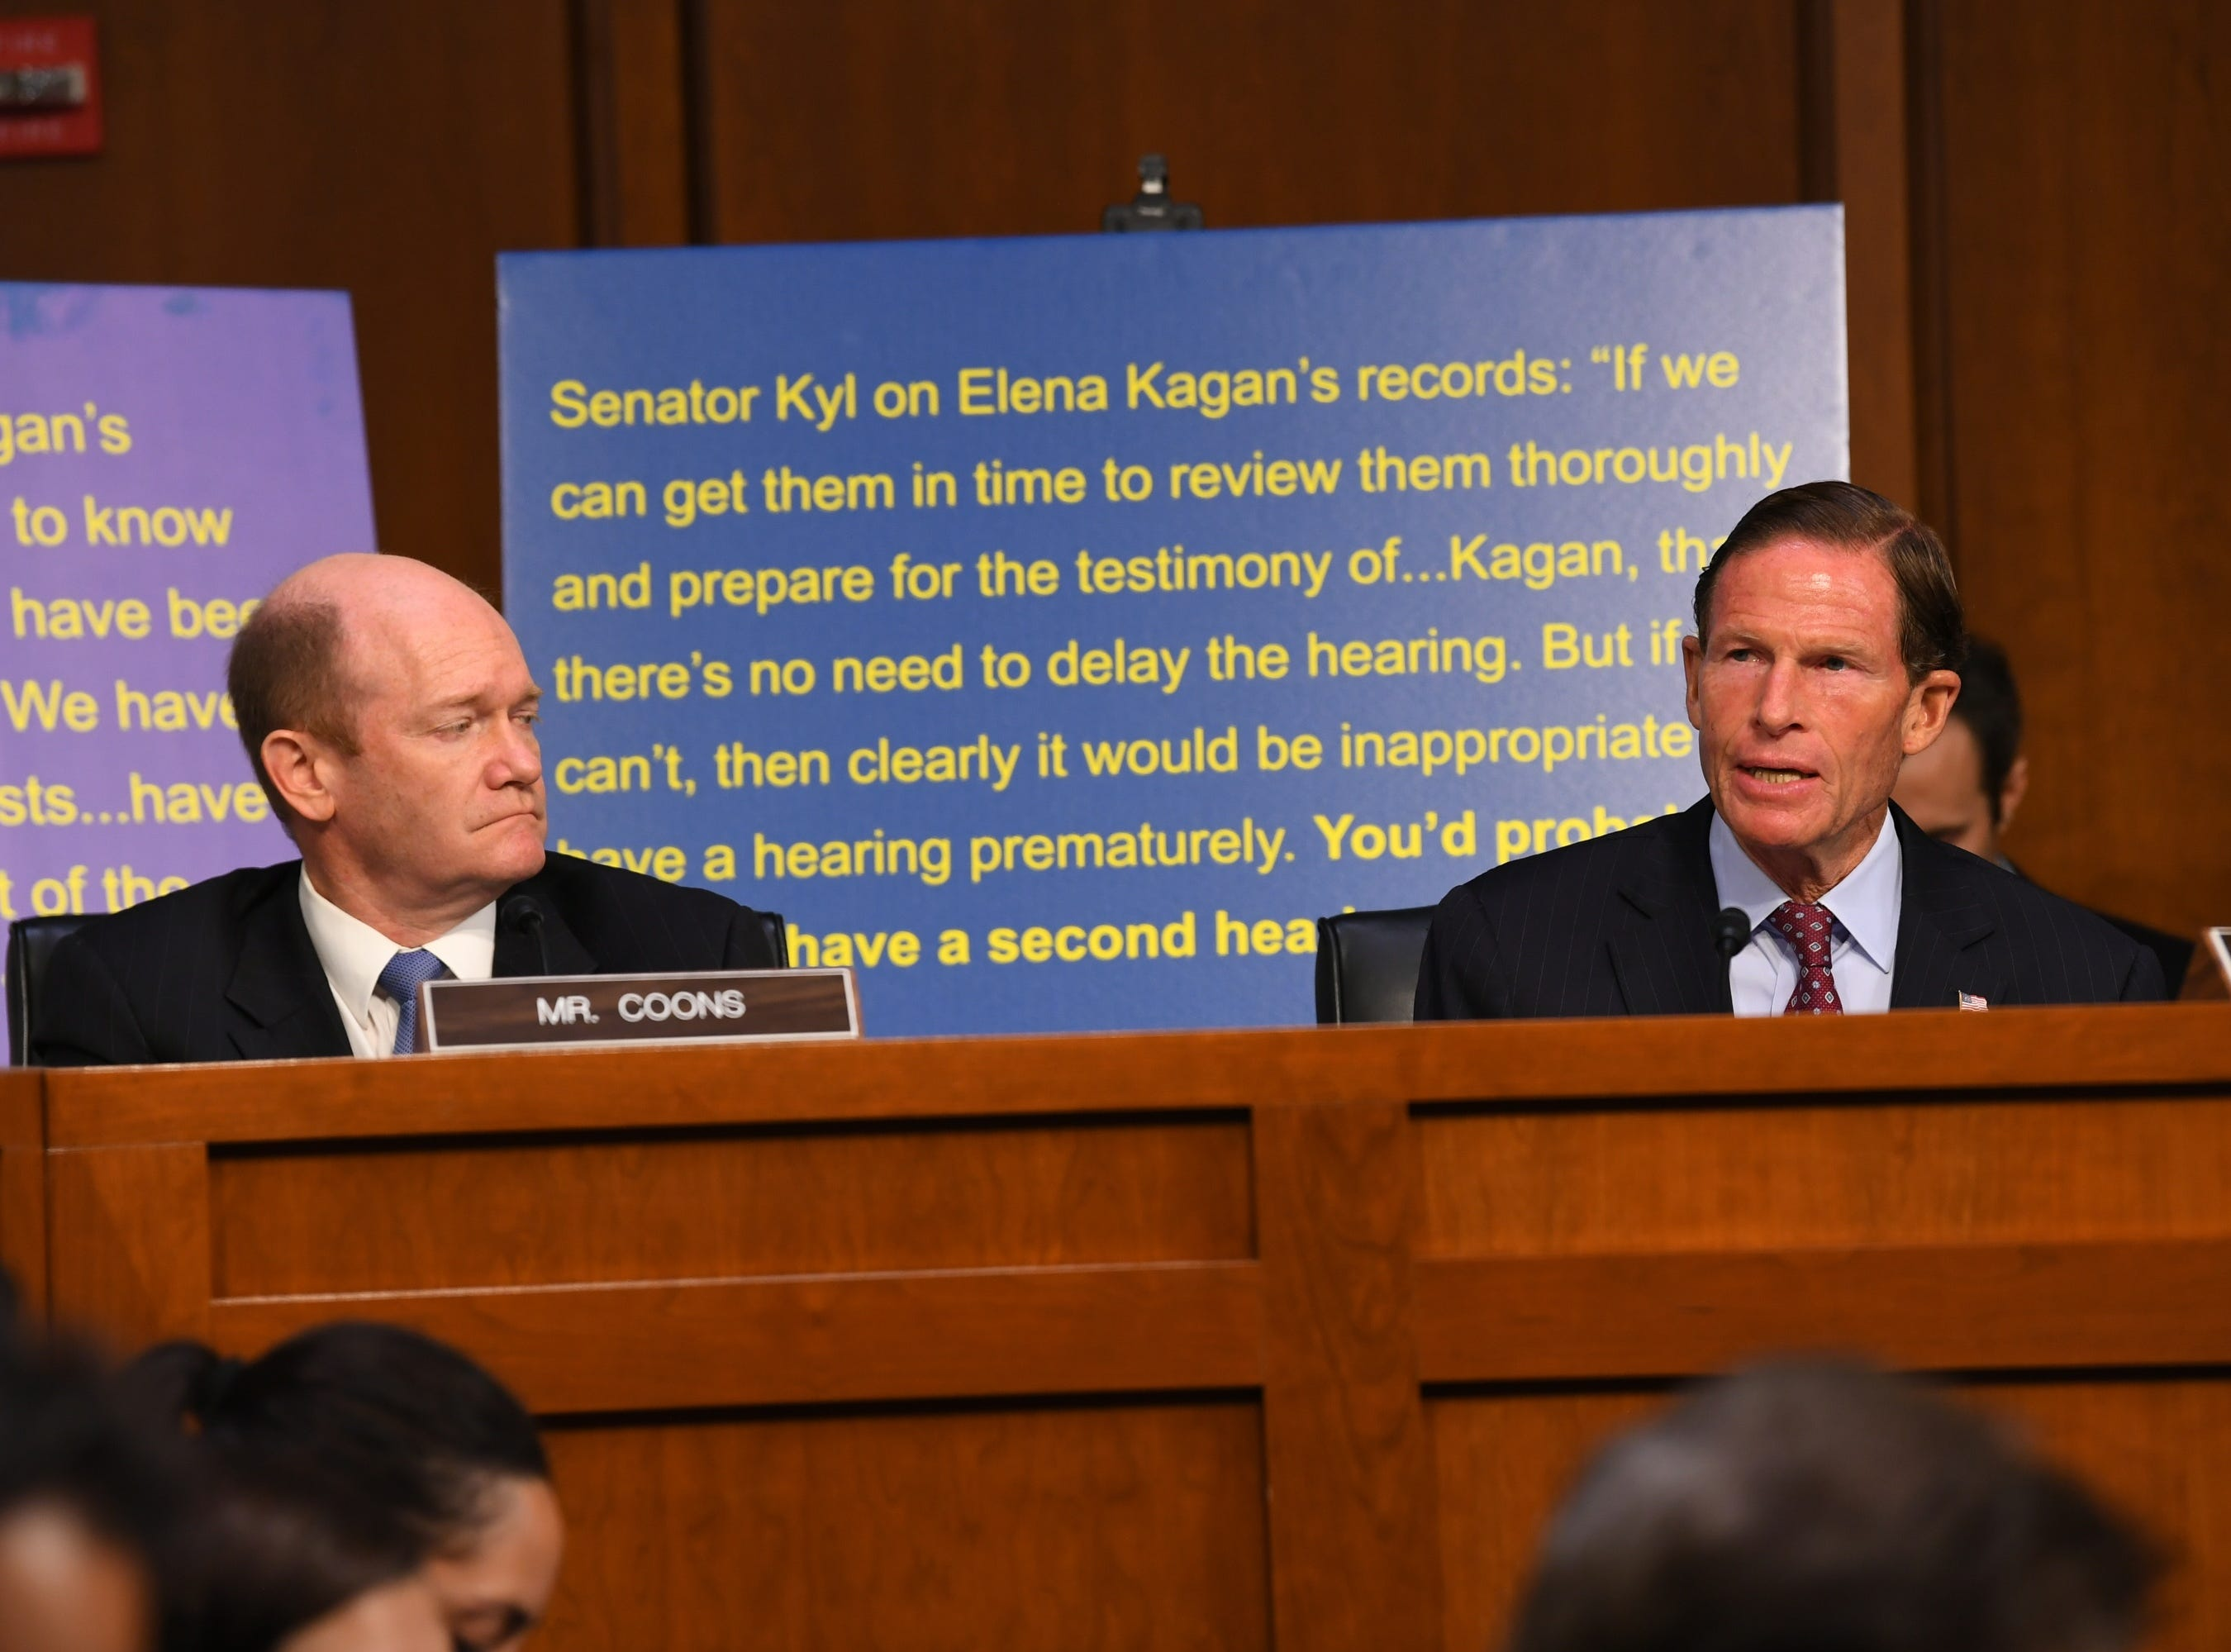 9/4/18 10:41:45 AM -- Washington, DC, U.S.A  -- Sen. Richard Blumenthal (D-Conn.), right speaks during the hearing for Supreme Court Associate Justice nominee Brett Kavanaugh on Sept. 4, 2018 in Washington. Kavanaugh was nominated by President Donald Trump to replace Justice Anthony Kennedy, who retired from the Supreme Court in July. Listening at left is Sen. Chris Coons (D-Del.). --    Photo by Jack Gruber, USA TODAY Staff ORG XMIT:  JG 137433 Kavanaugh Confir 9/4/2018 (Via OlyDrop)